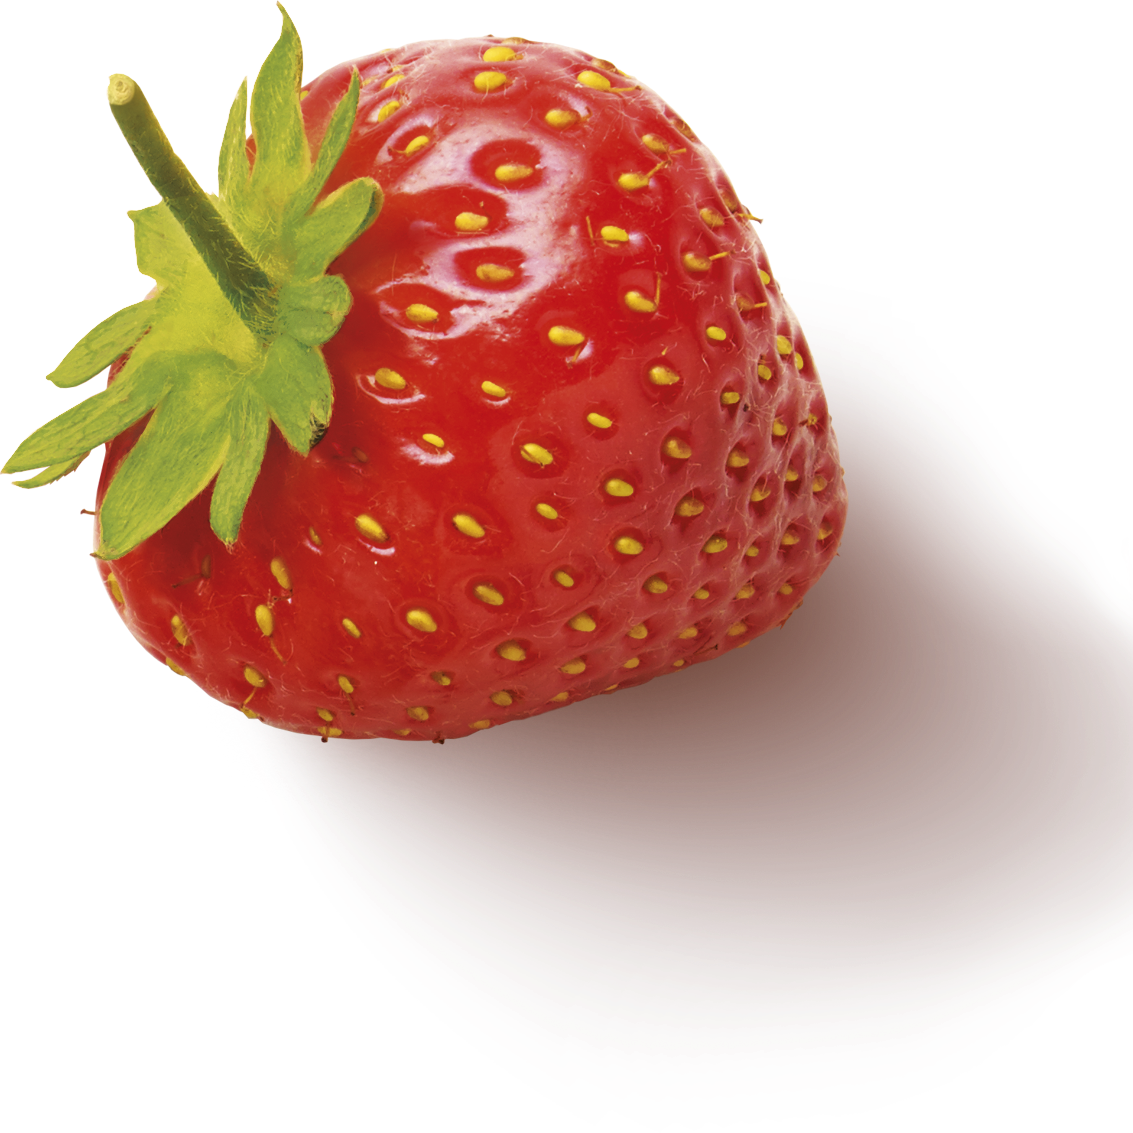 fruitinfusion-summerfruits-ingredient3-strawberry.png